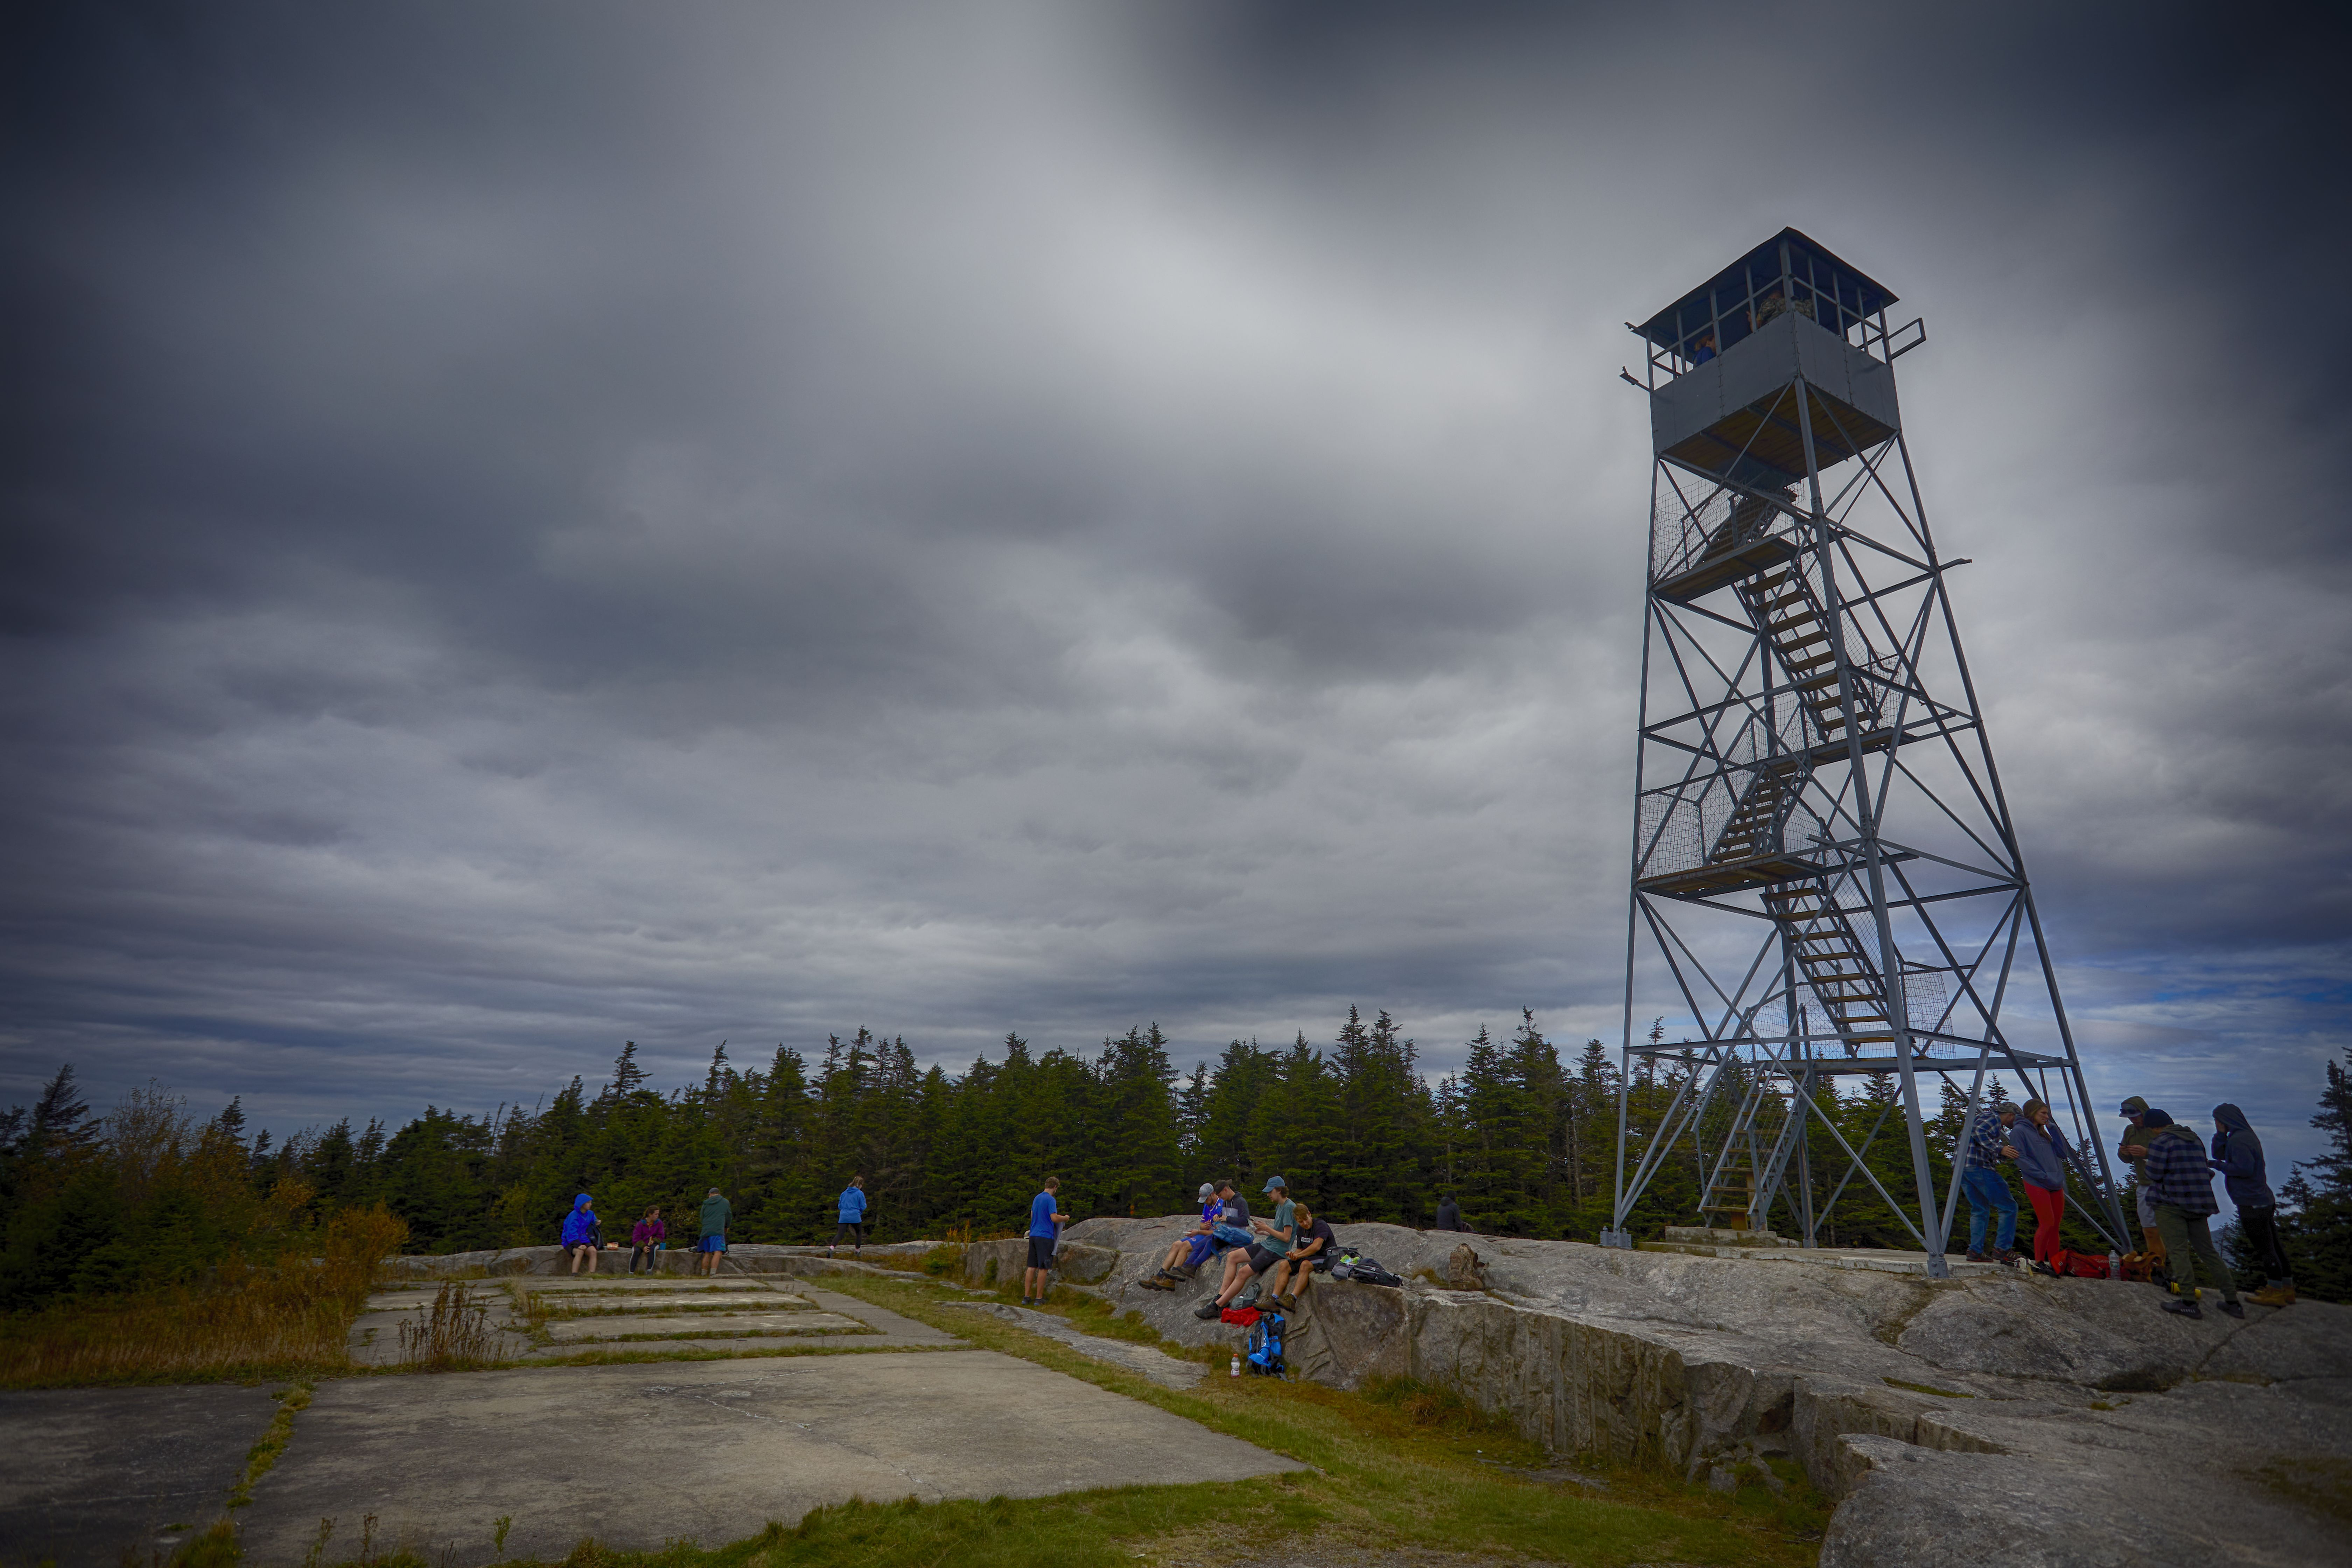 View of Blue Mountain Fire Tower at summit.